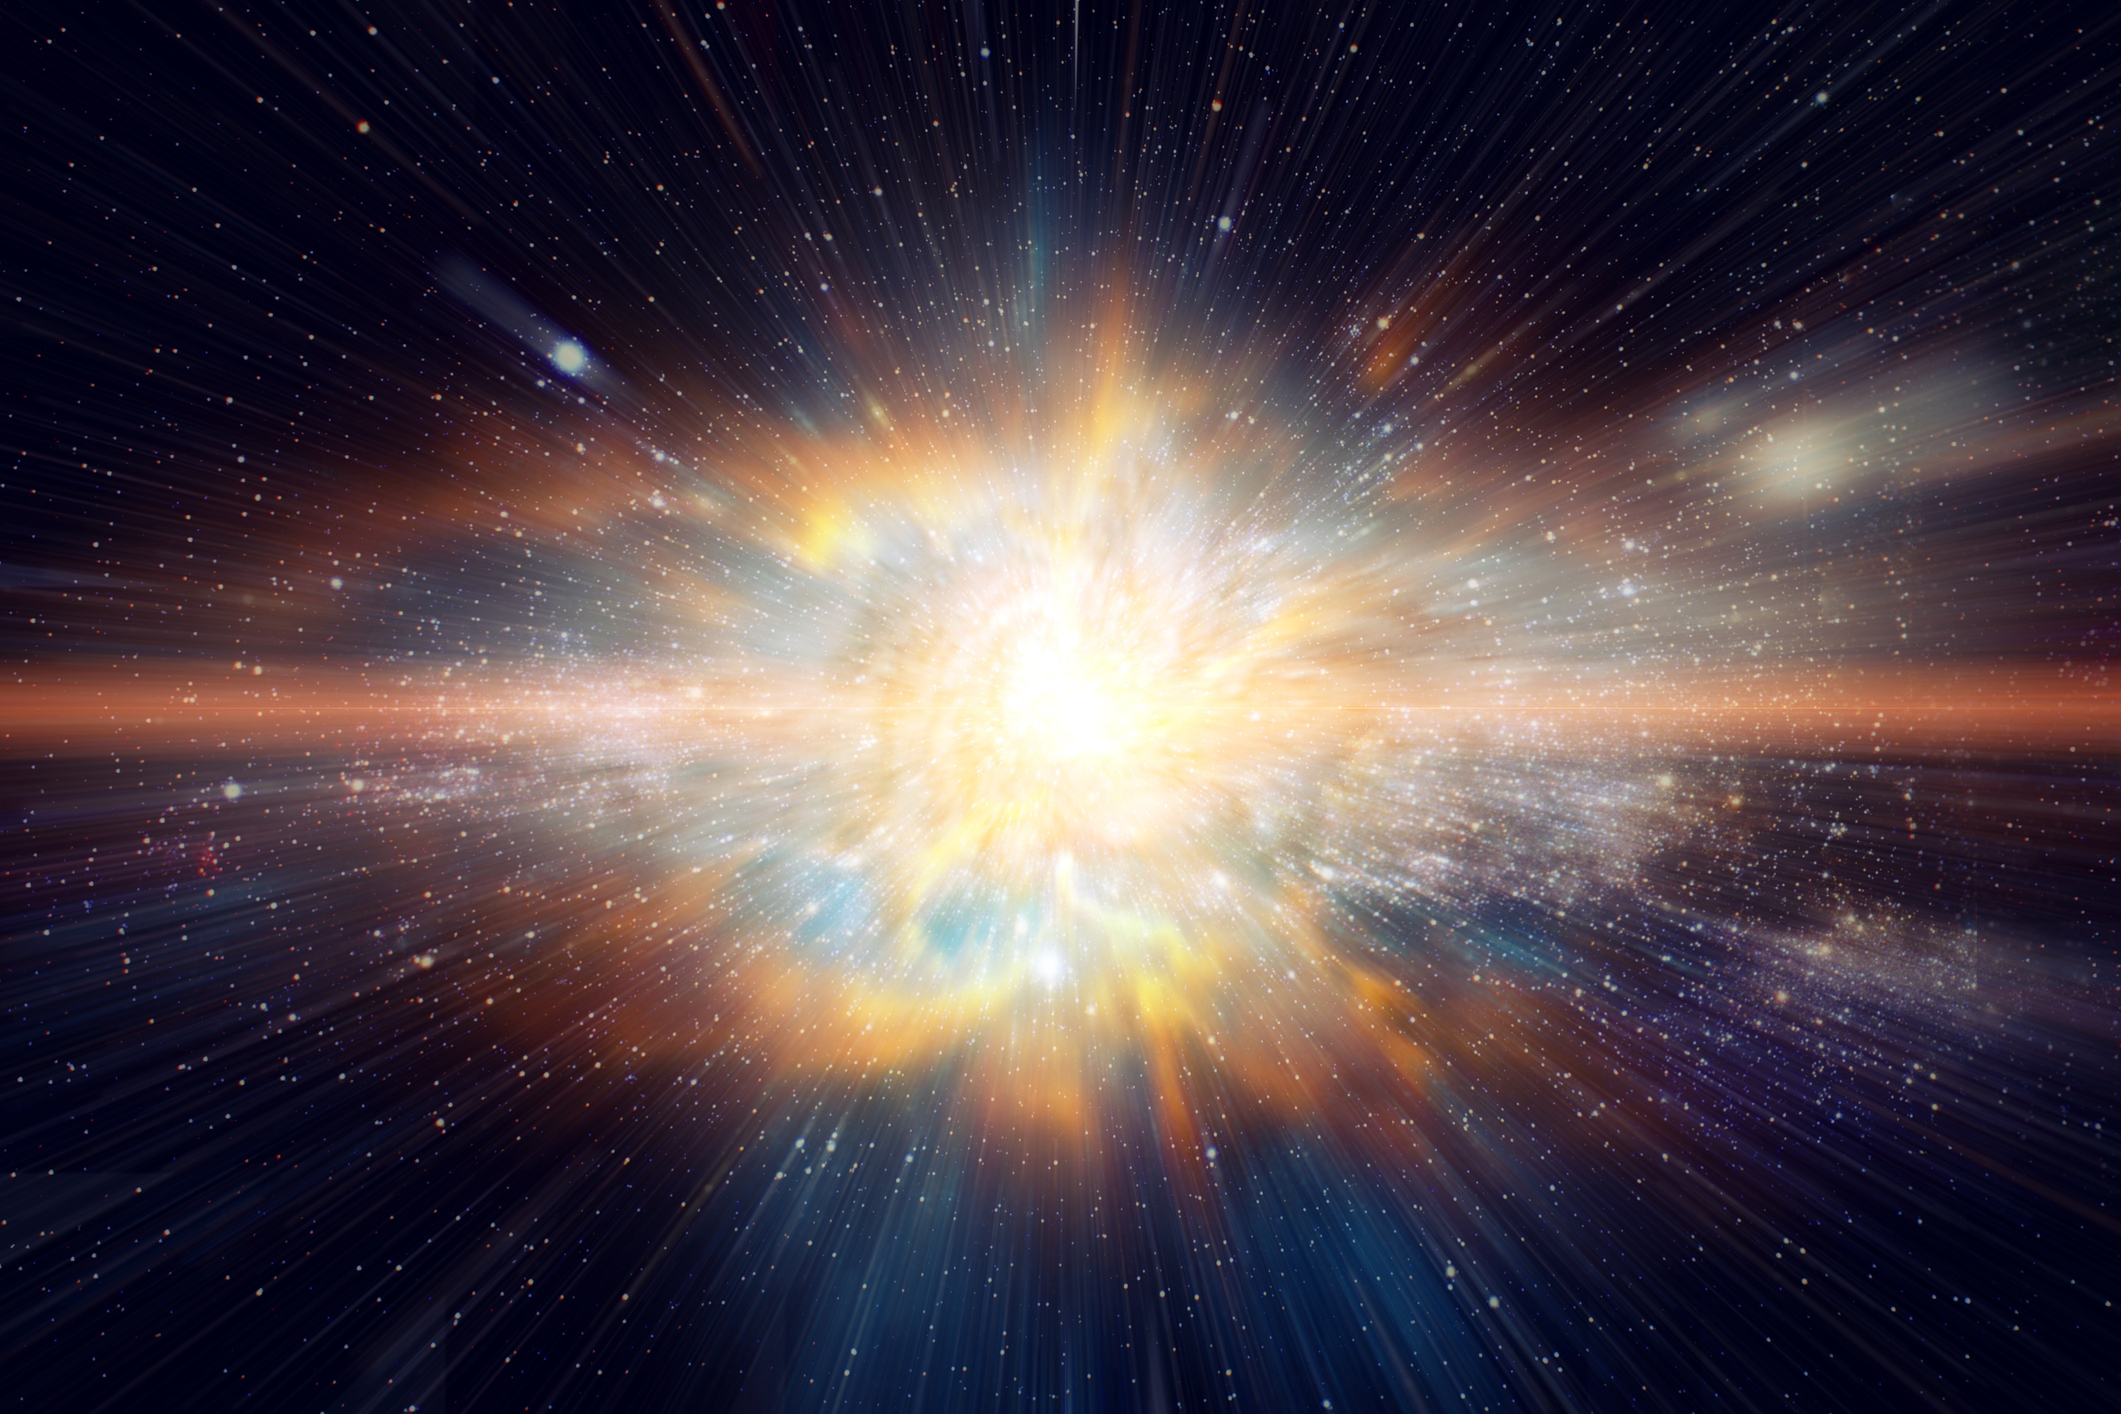 Supernova explosions may have caused mass extinction on earth 350 million years ago